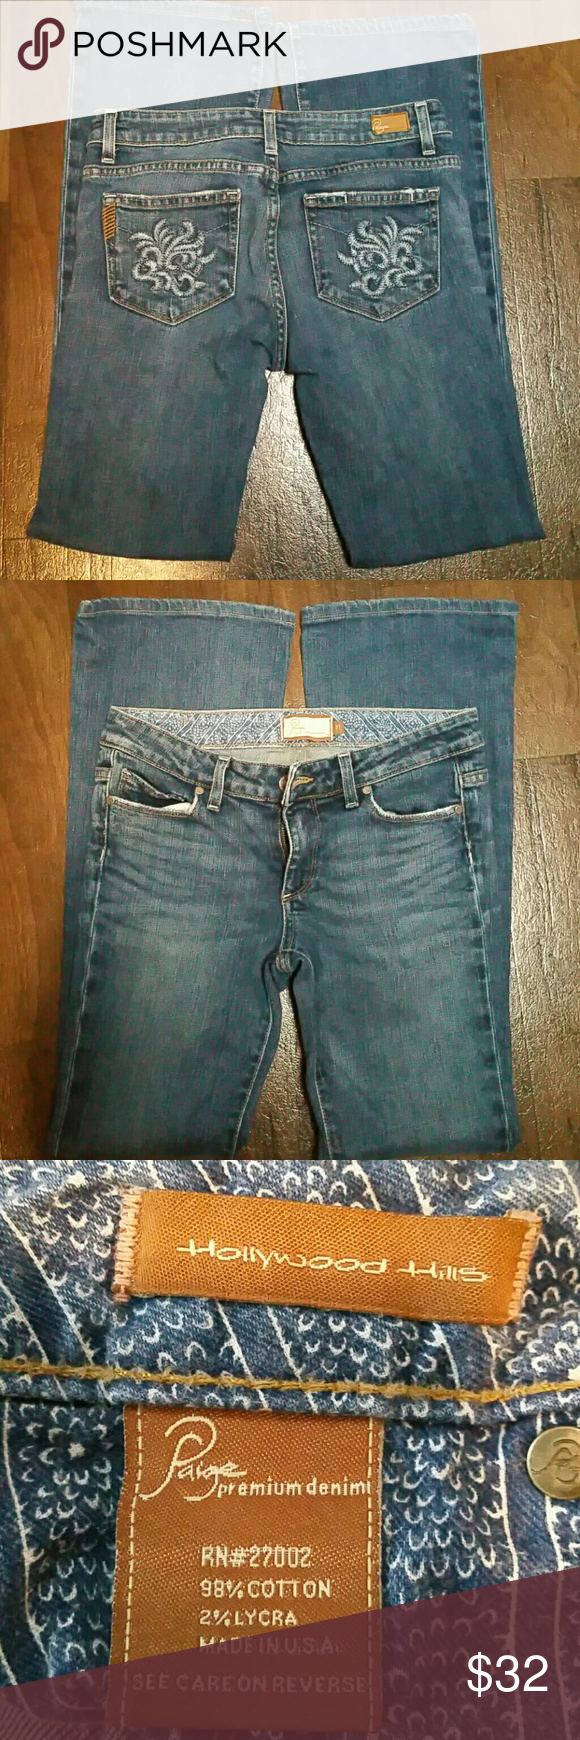 "PAIGE FLARE JEANS Excellent pre-owned condition  98% Cotton / 2% lycra 27X31 / 8"" rise  SMOKE /PET FREE HOME Paige Jeans Jeans Flare & Wide Leg"